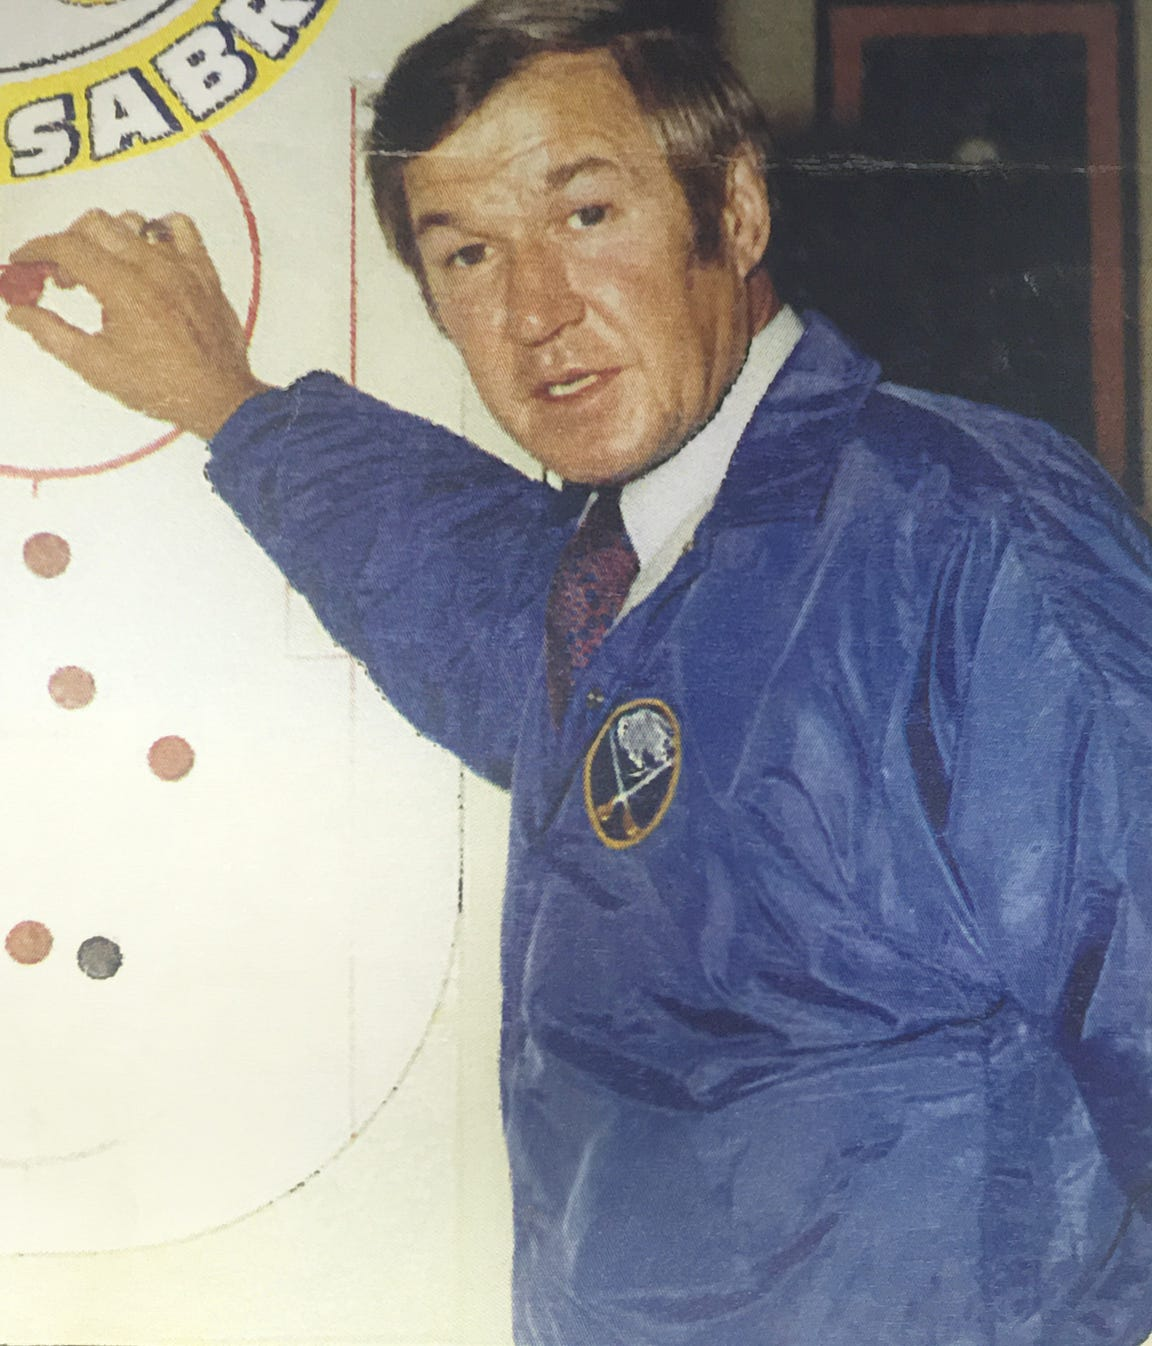 Joe Crozier played a key role in putting Buffalo on the NHL map when he took the Sabres to their first playoff berth in 1972-73, just the franchise's third year of existence. His hockey partner through life, Punch Imlach, had suffered a heart attack the previous year and had to step down, giving Crozier his NHL break.